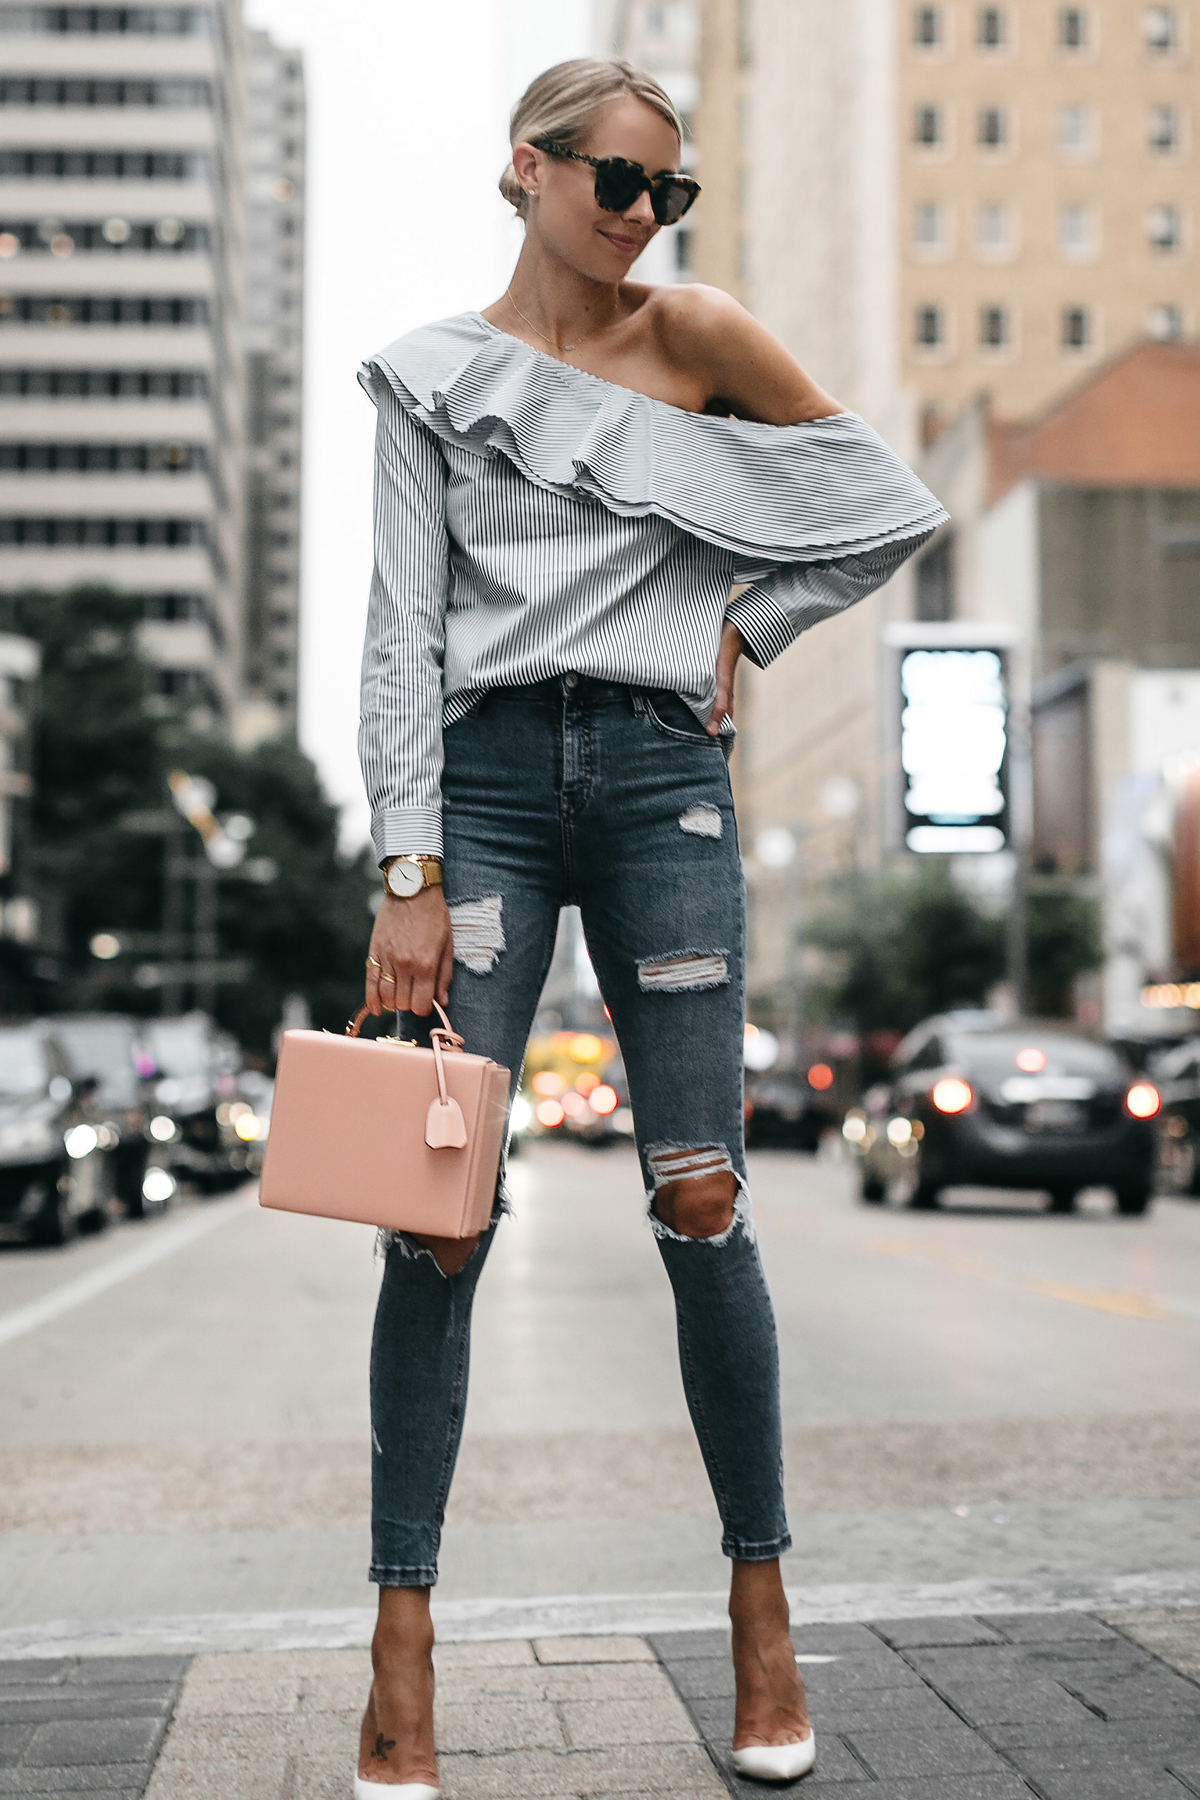 Topshop Denim Ripped Skinny Jeans Mark Cross Saffiano Pink Handbag Christian Louboutin White Pumps Fashion Jackson Dallas Blogger Fashion Blogger Street Style